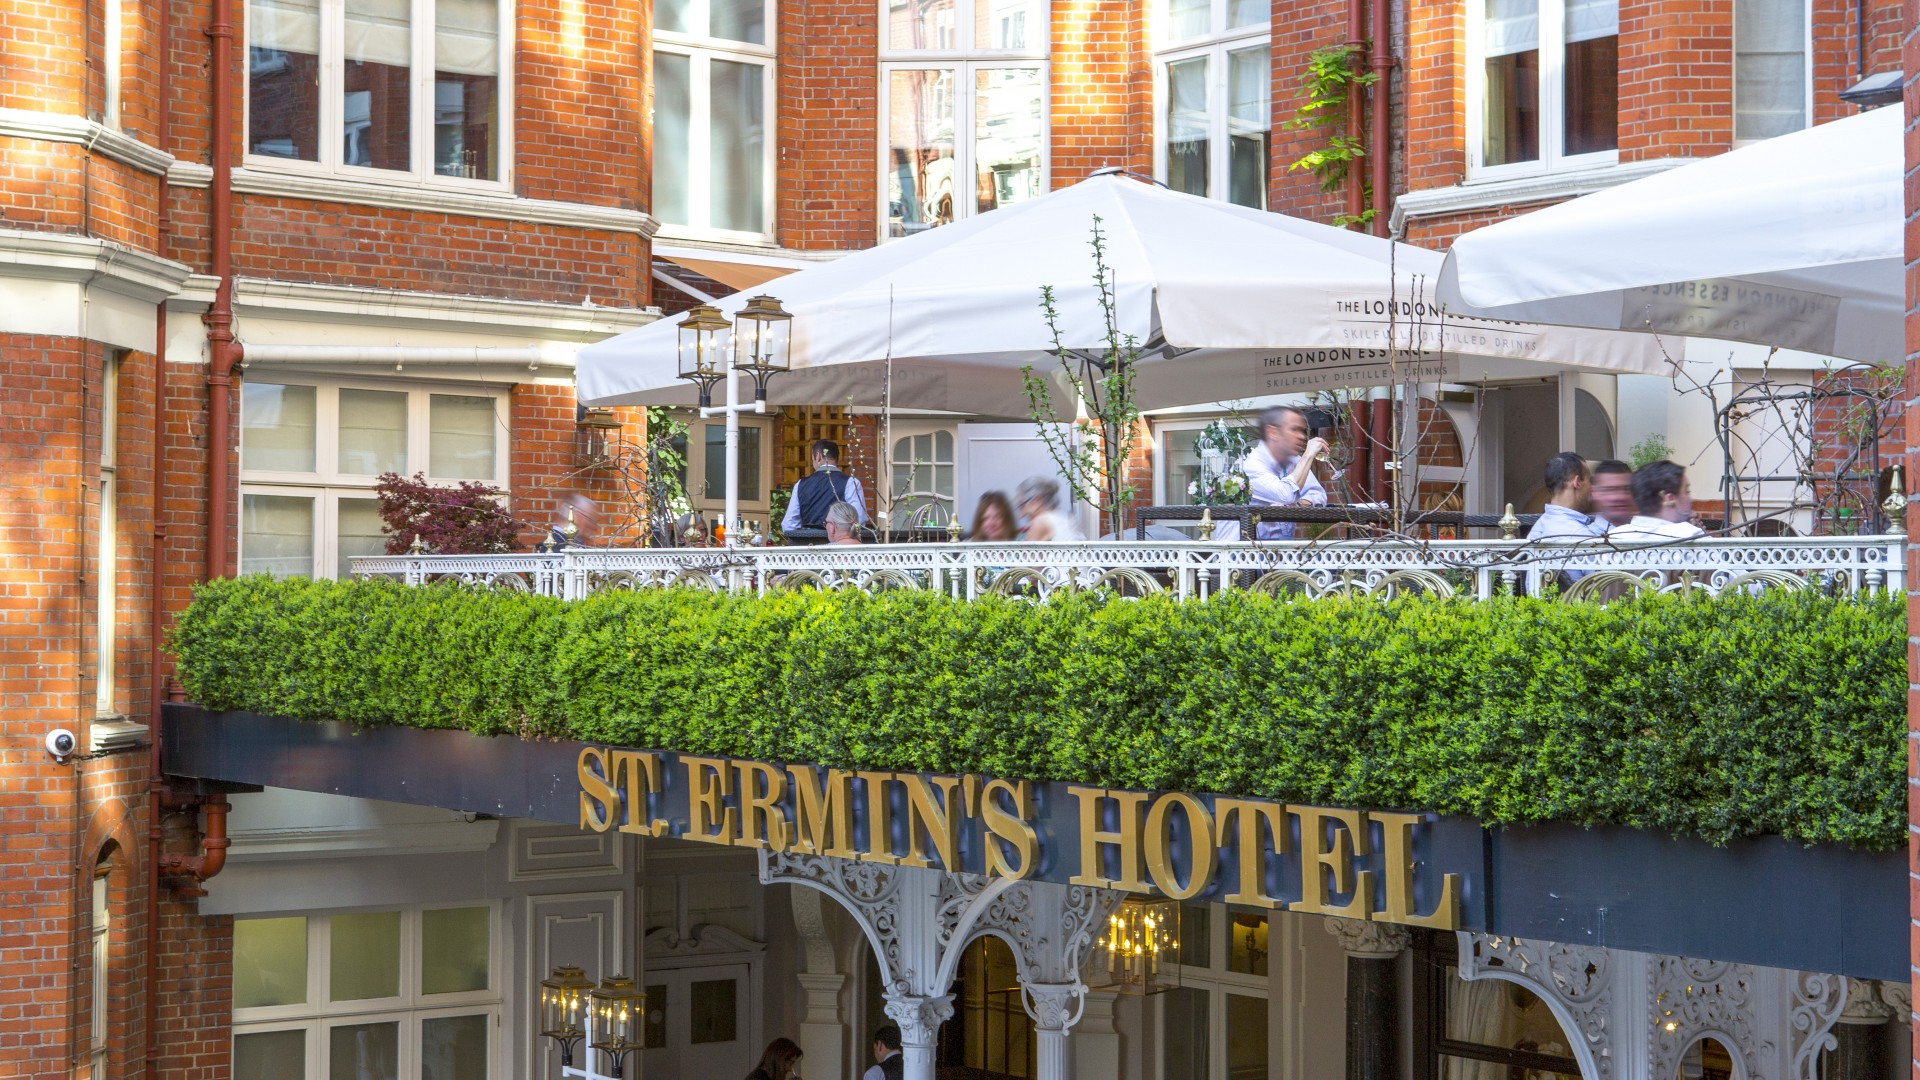 The terrace at St Ermin's Hotel